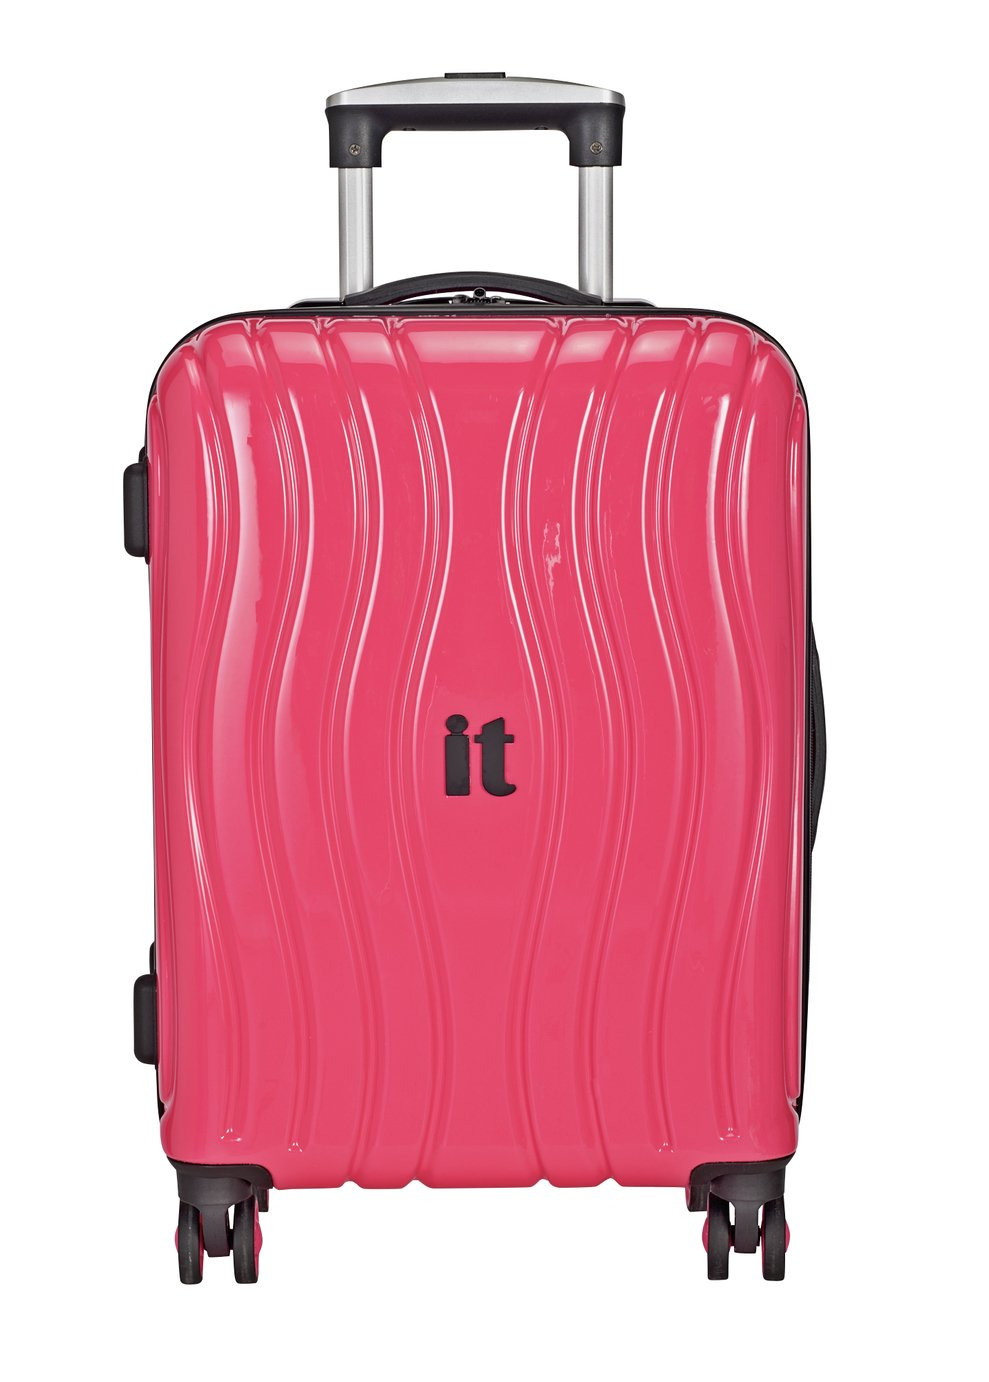 IT Luggage Large 8 Wheel Hard Suitcase - Metallic Pink